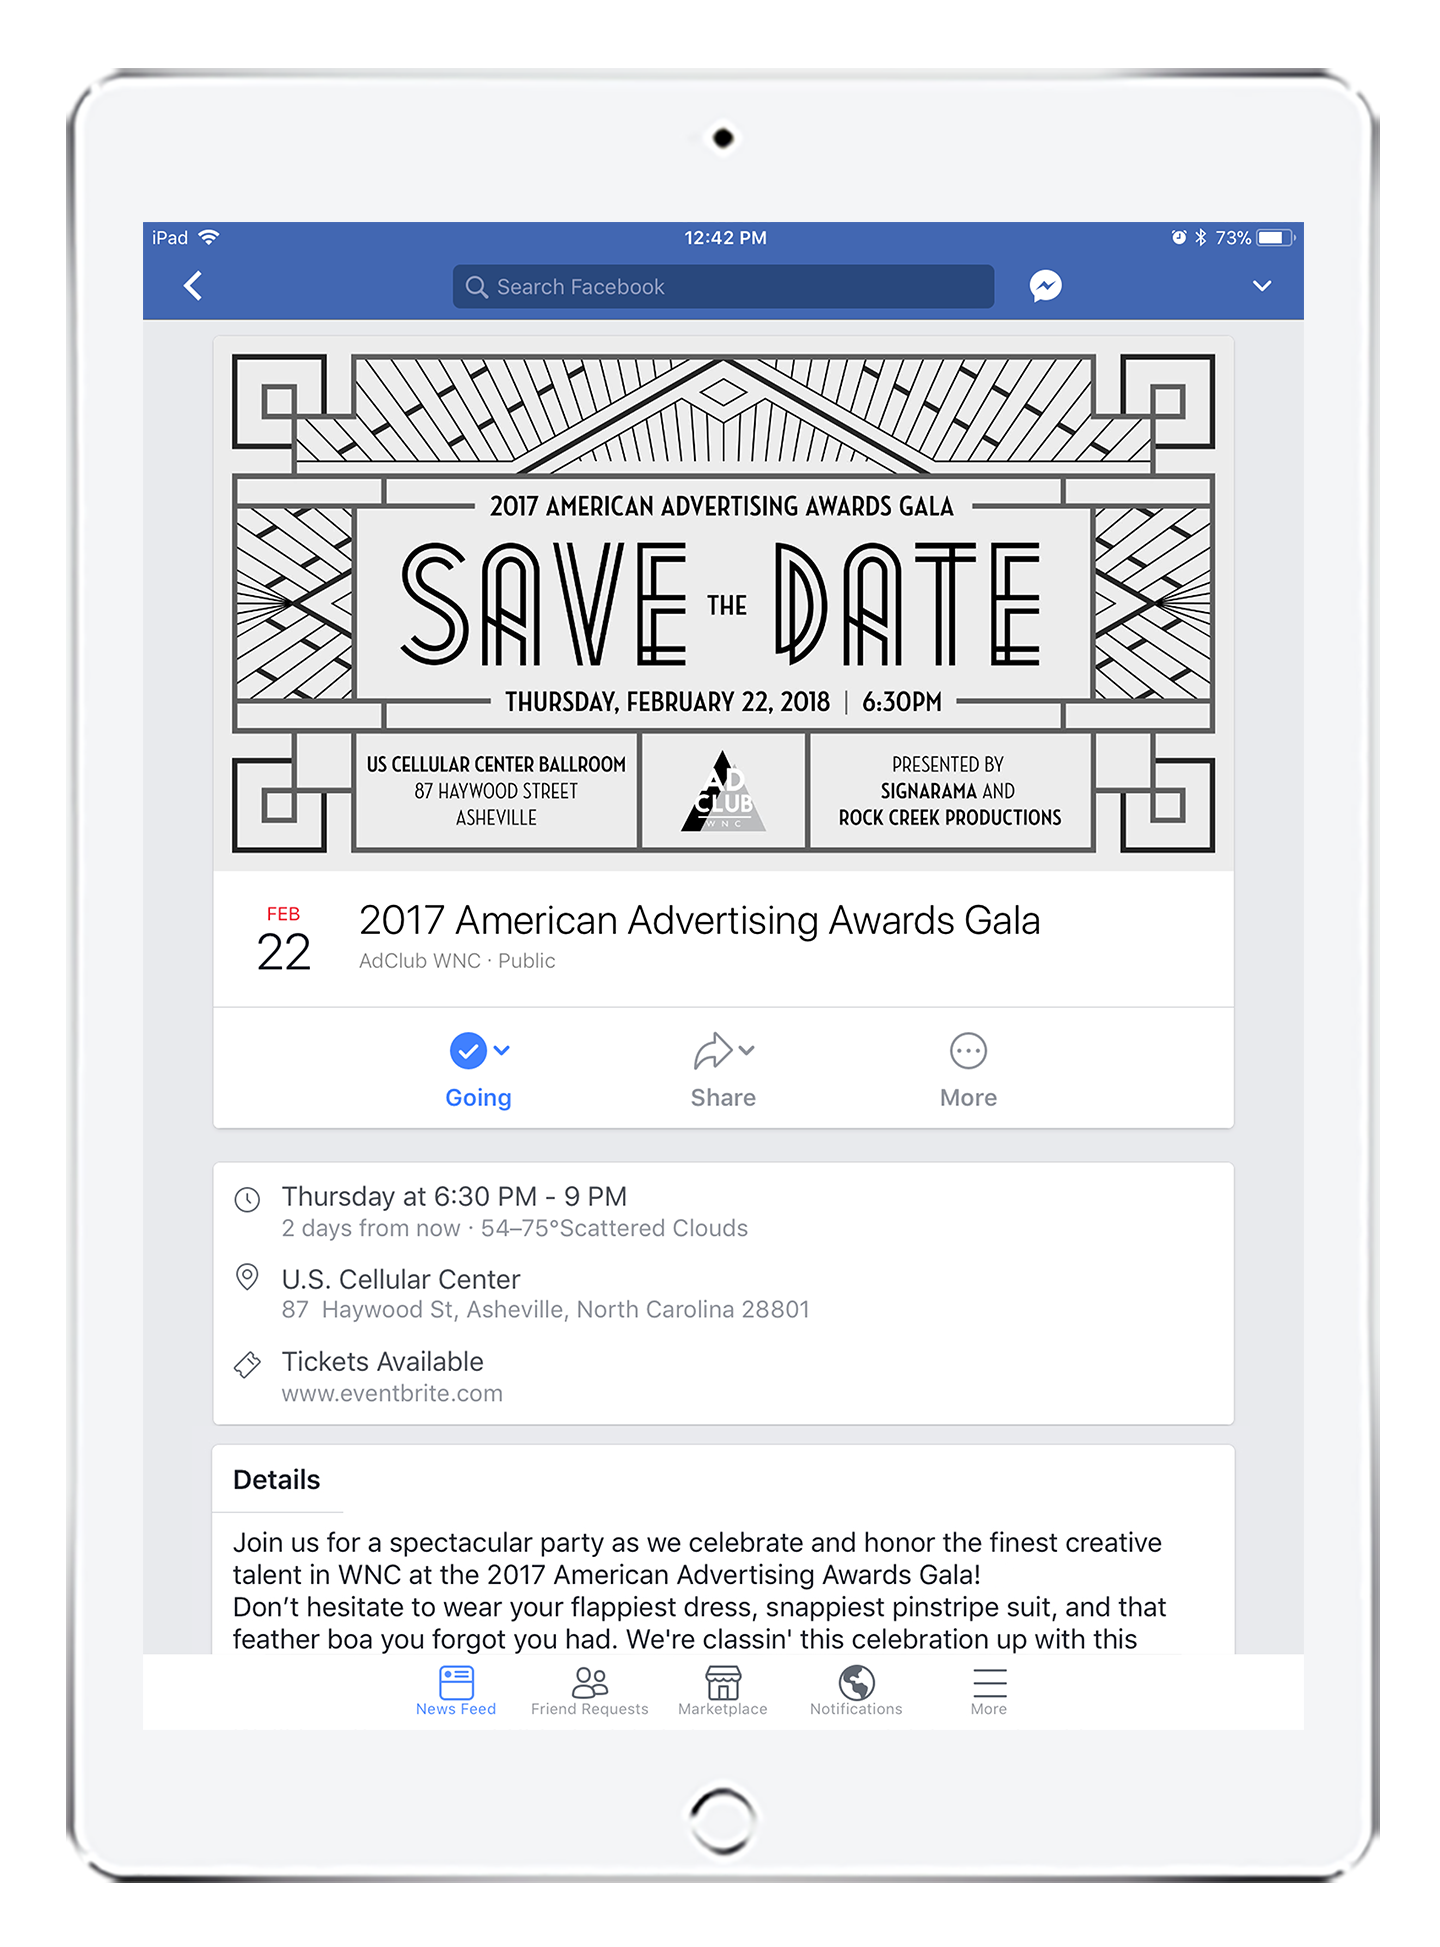 2018 Awards Gala Save the Date